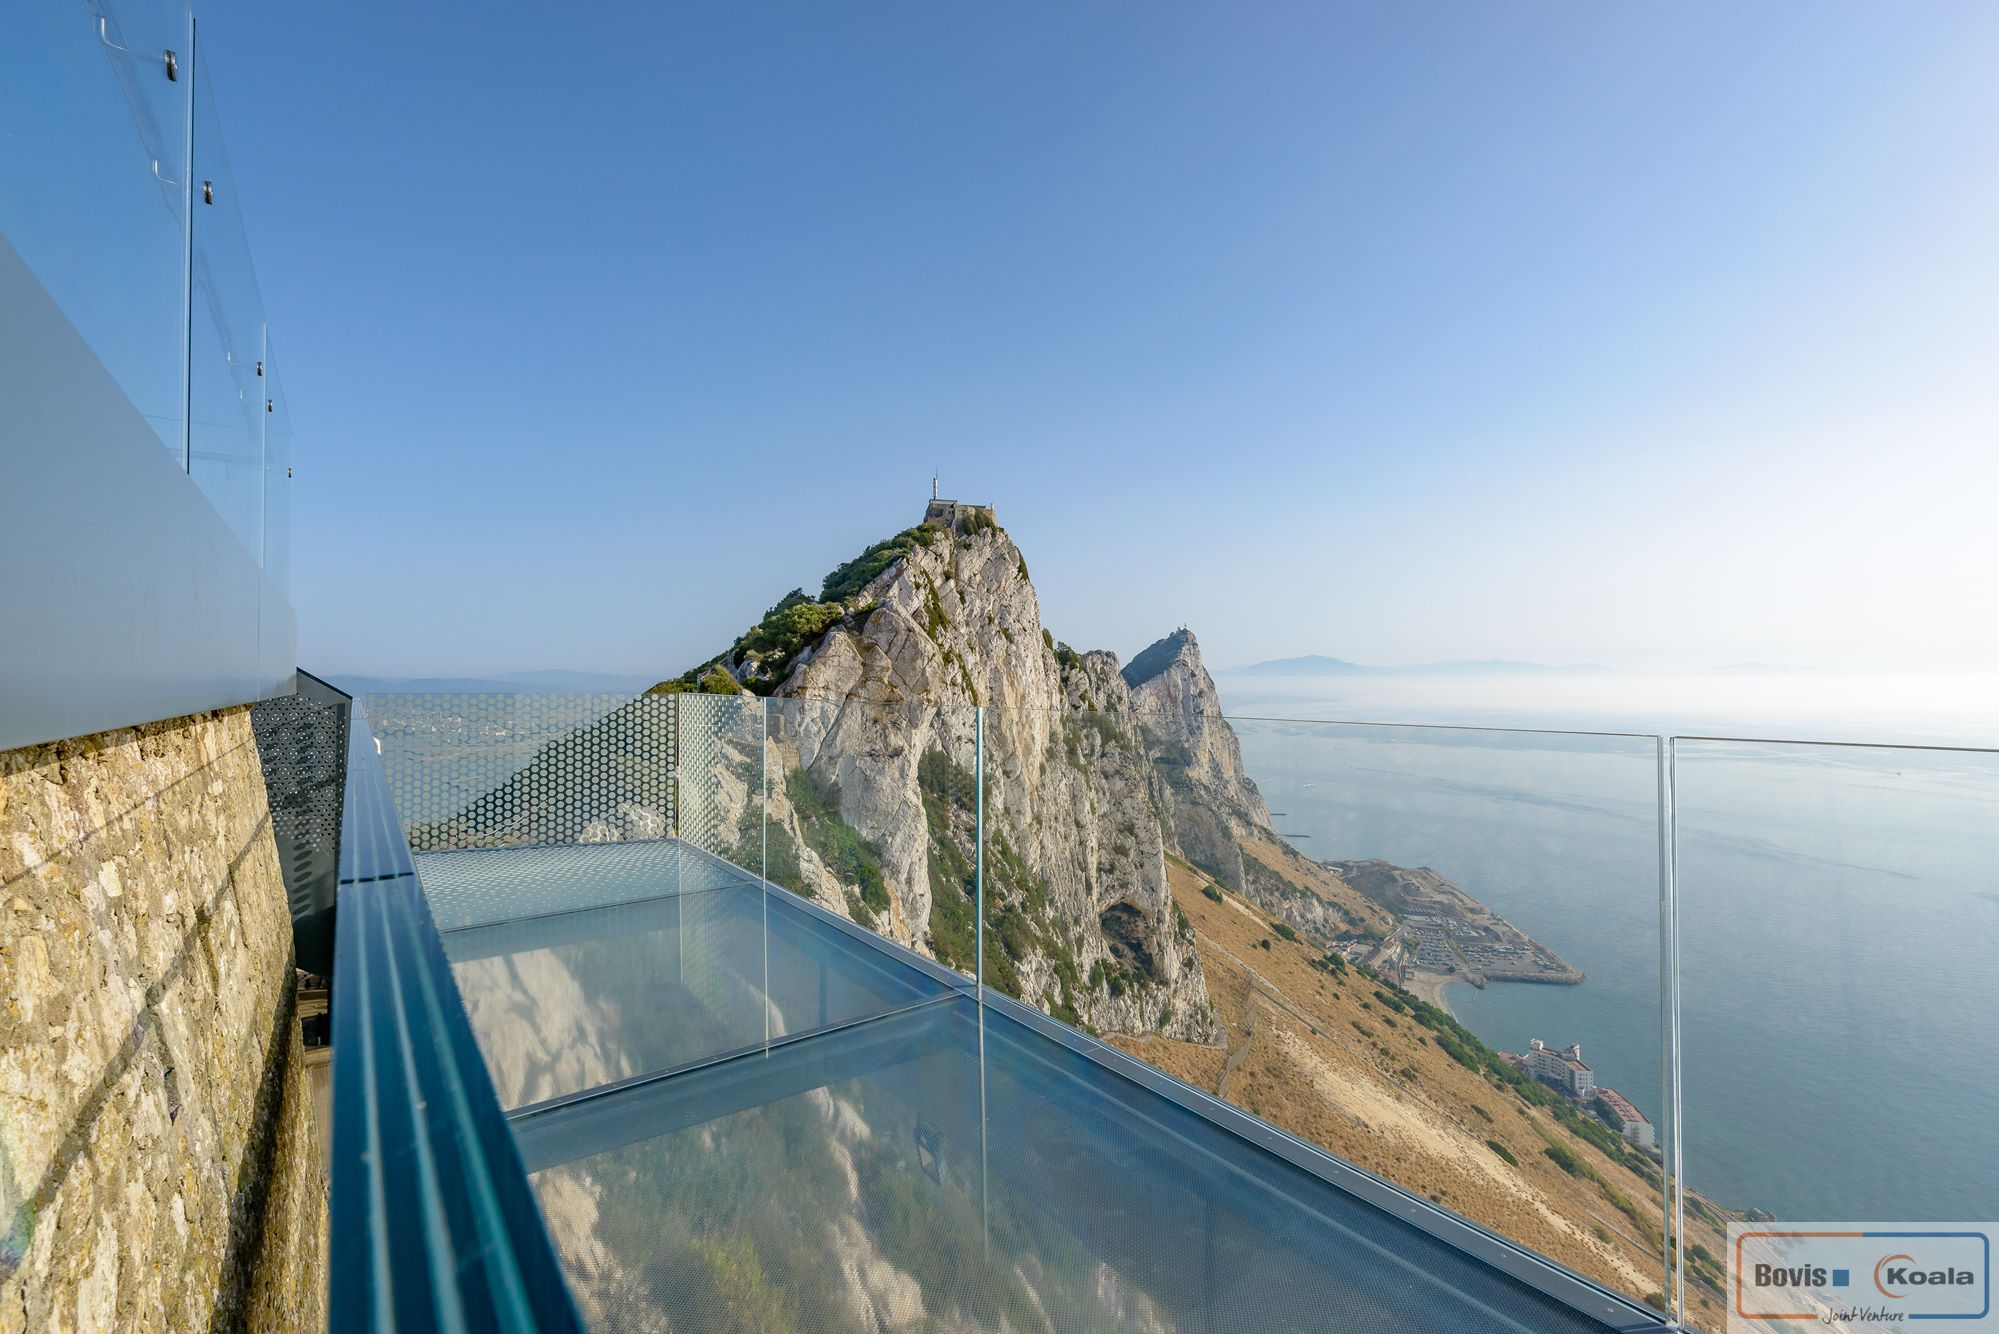 Bovis Koala Skywalk Gibraltar 14